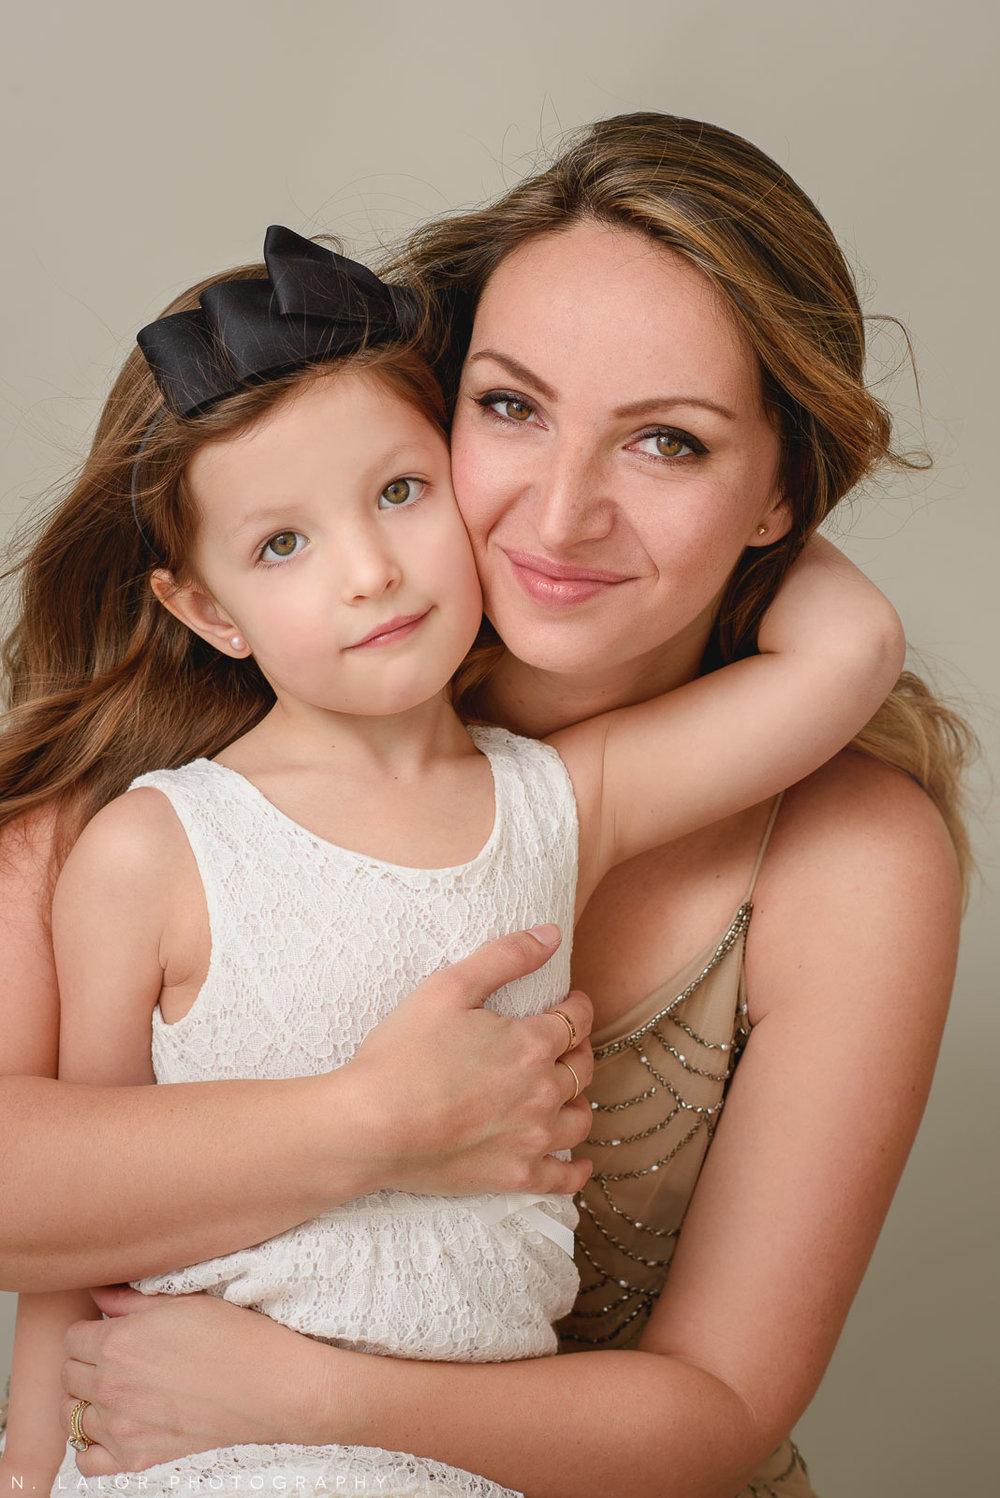 Beautiful Mom with her child. A Mother and Daughter photoshoot with N. Lalor Photography in Greenwich, Connecticut.